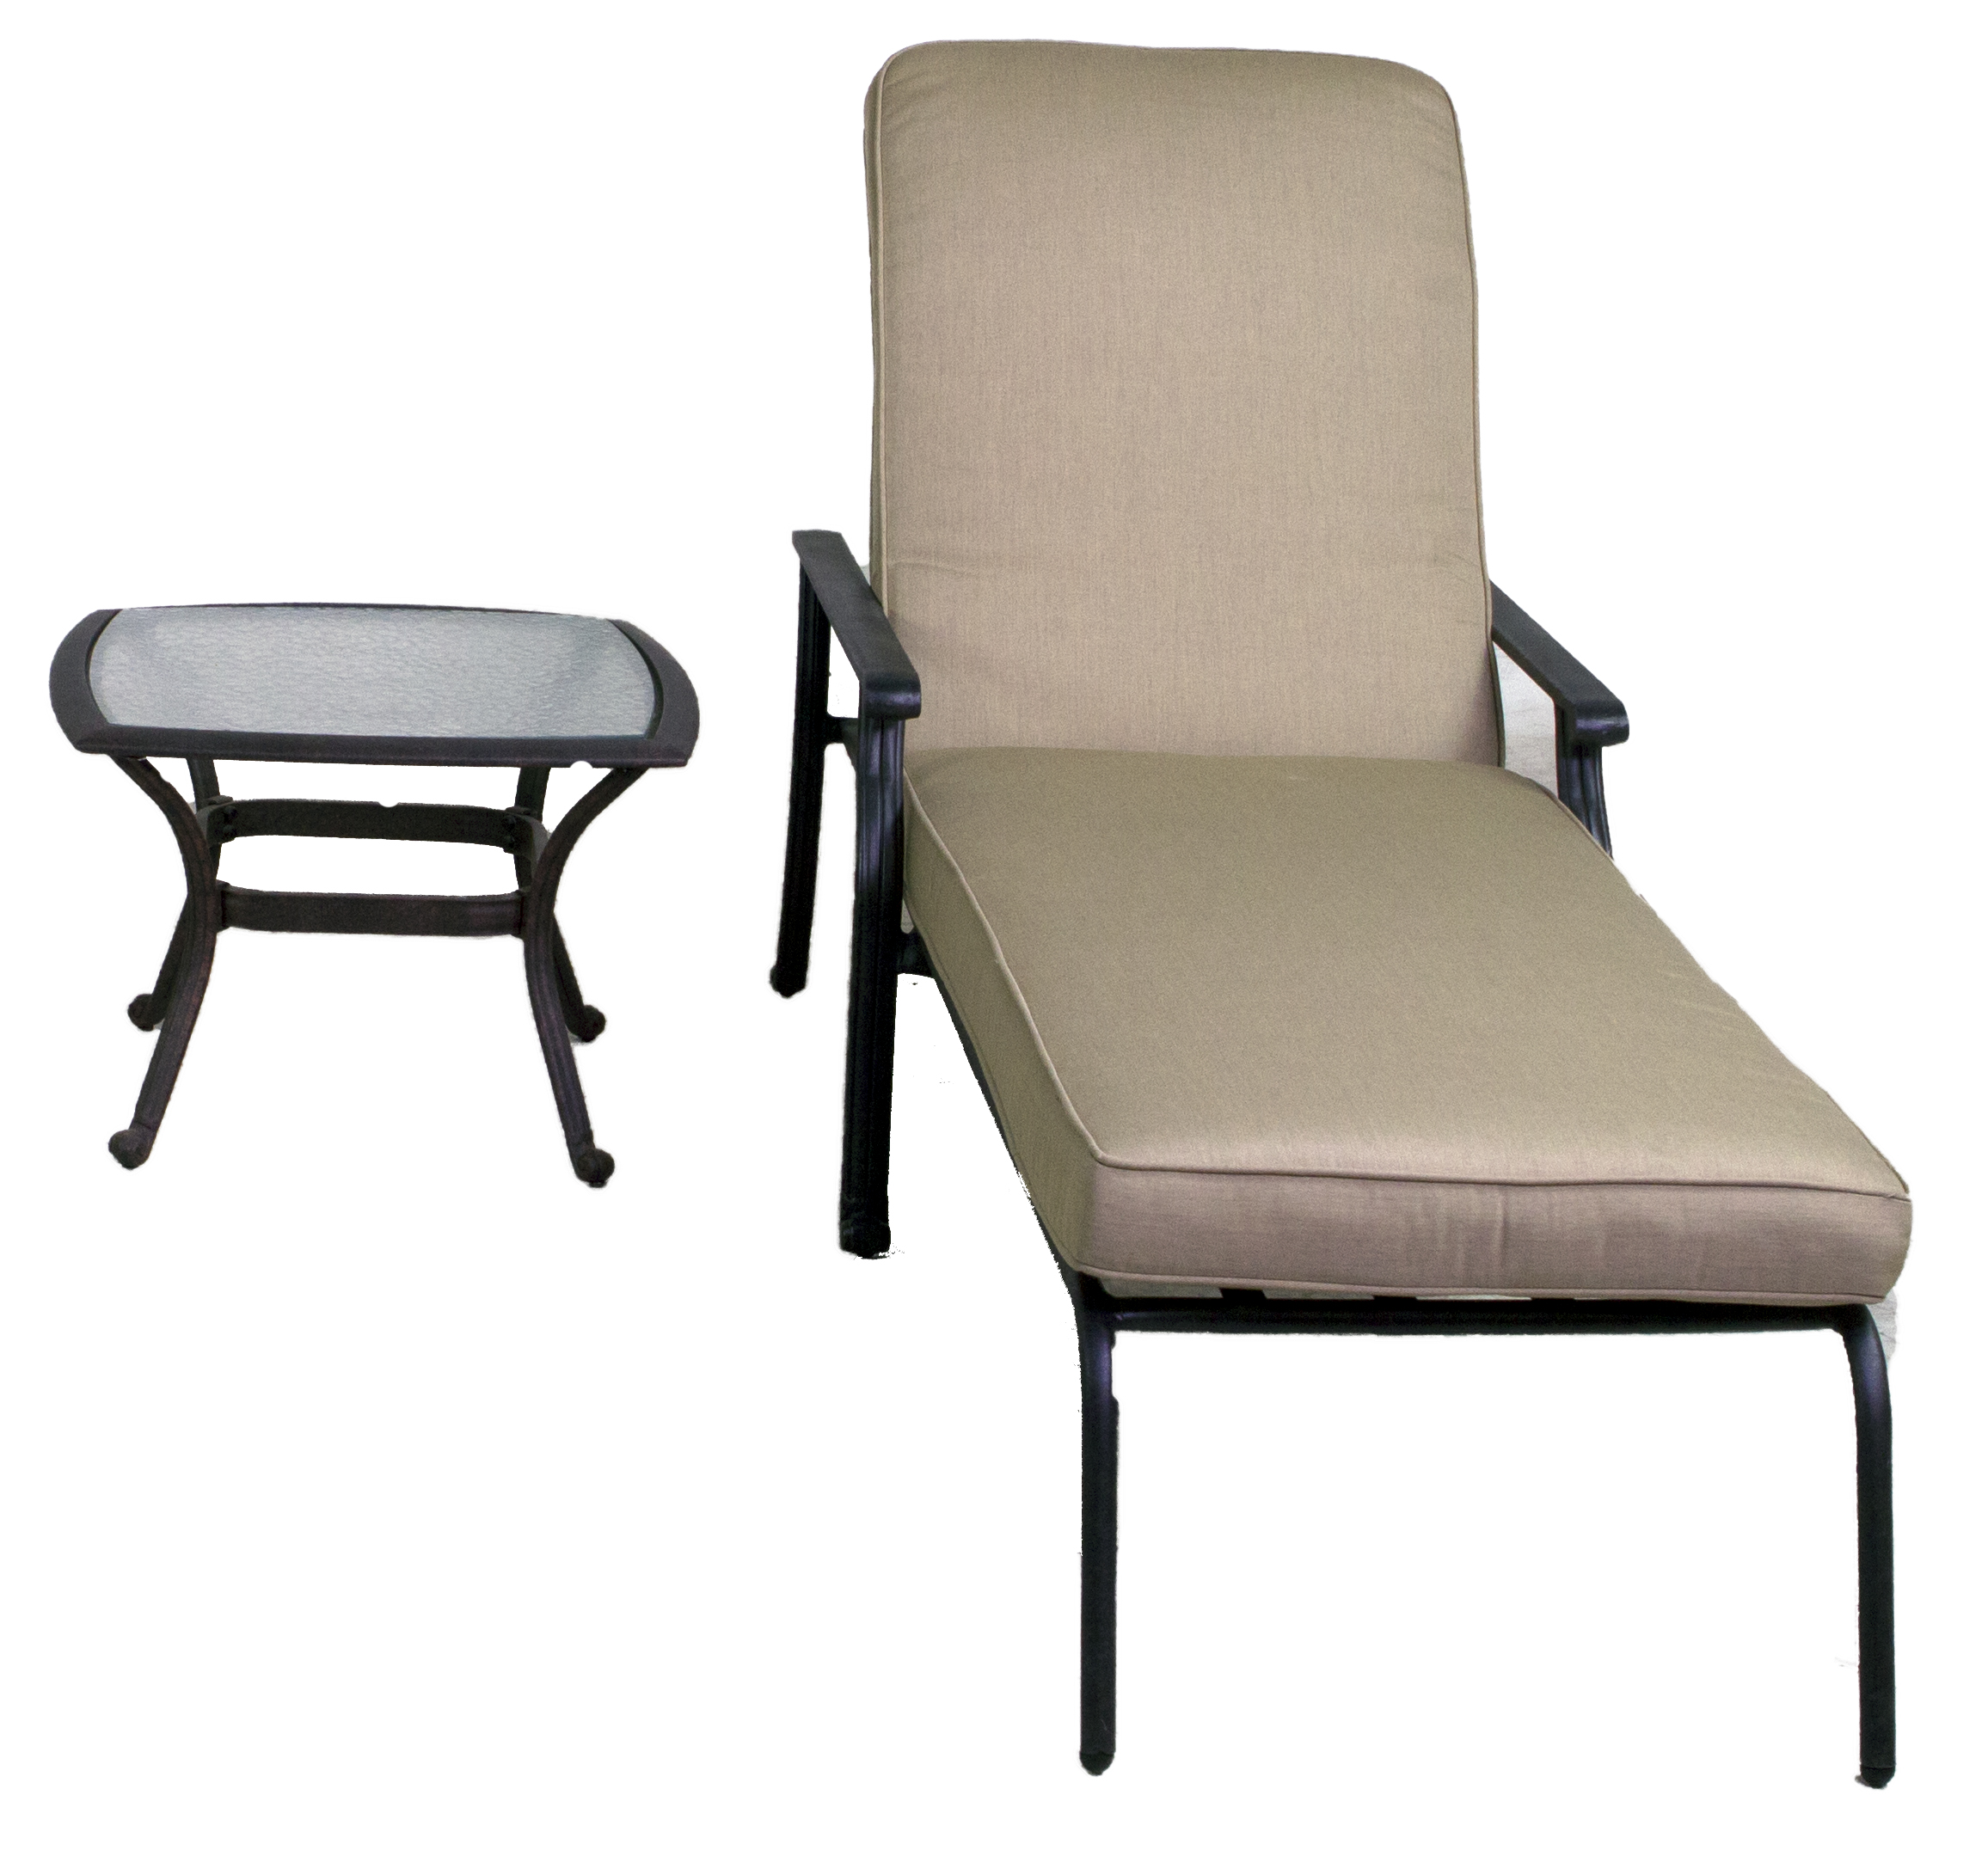 Best of backyard rosemead collection chaise lounge set for Best chaise lounge